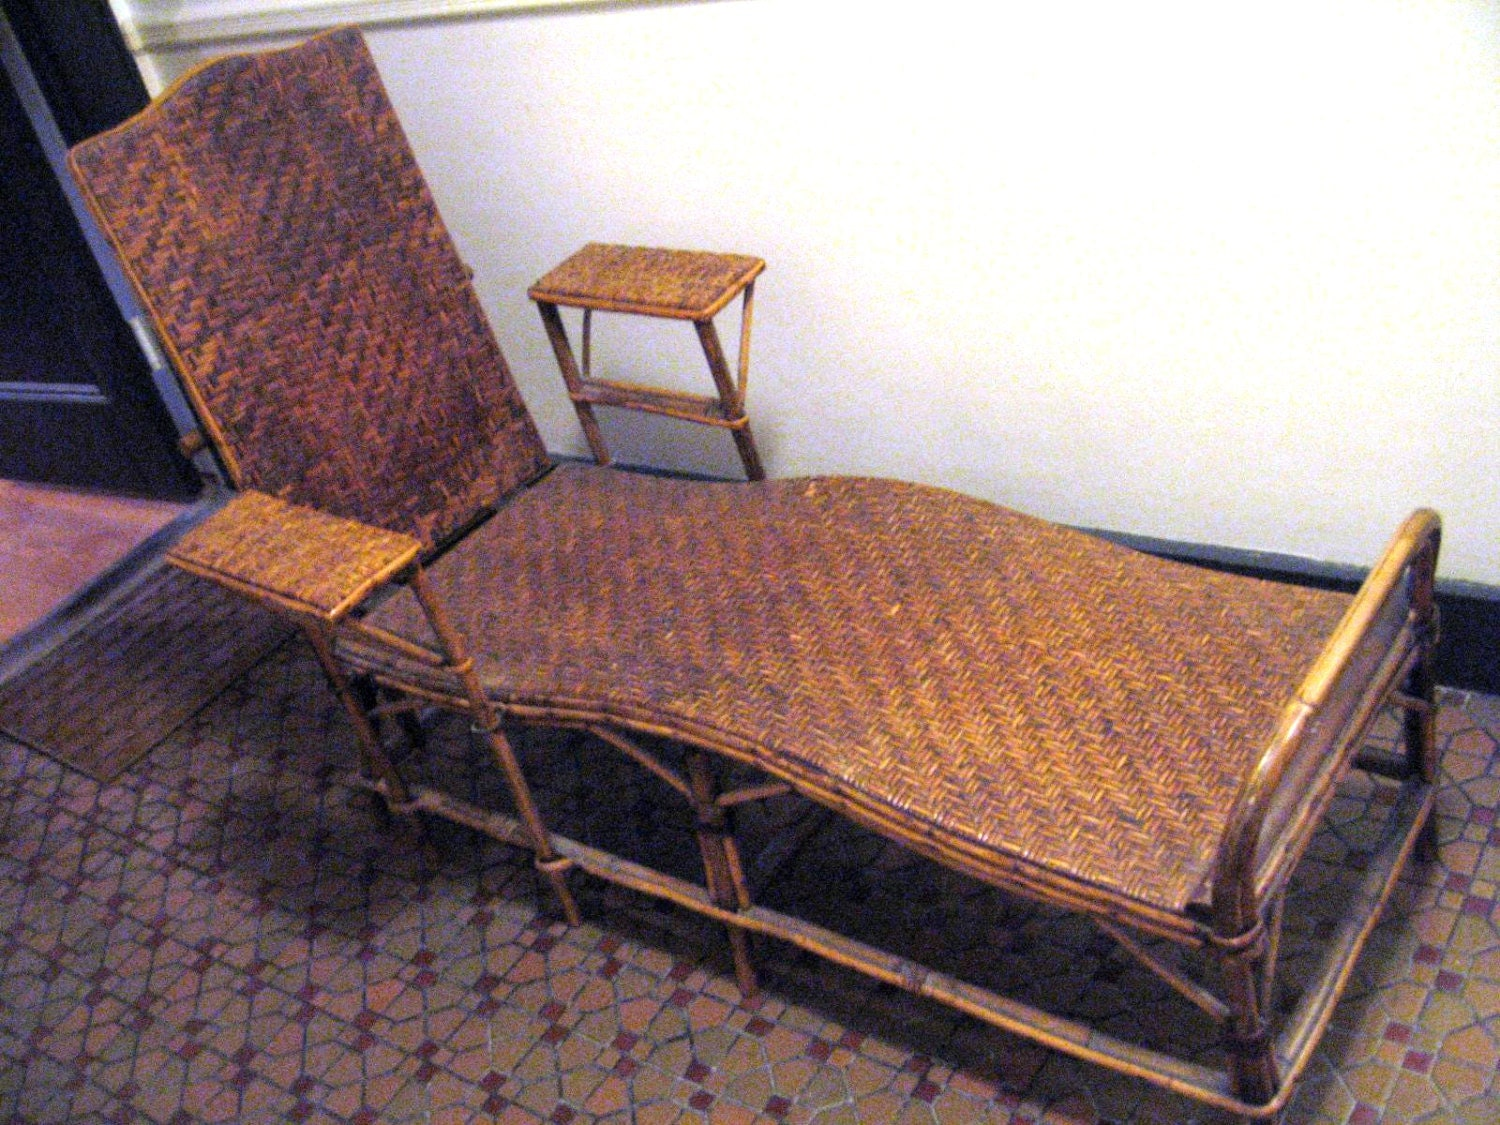 Antique french bamboo wicker chaise lounge local pick up nyc for Antique wicker chaise lounge